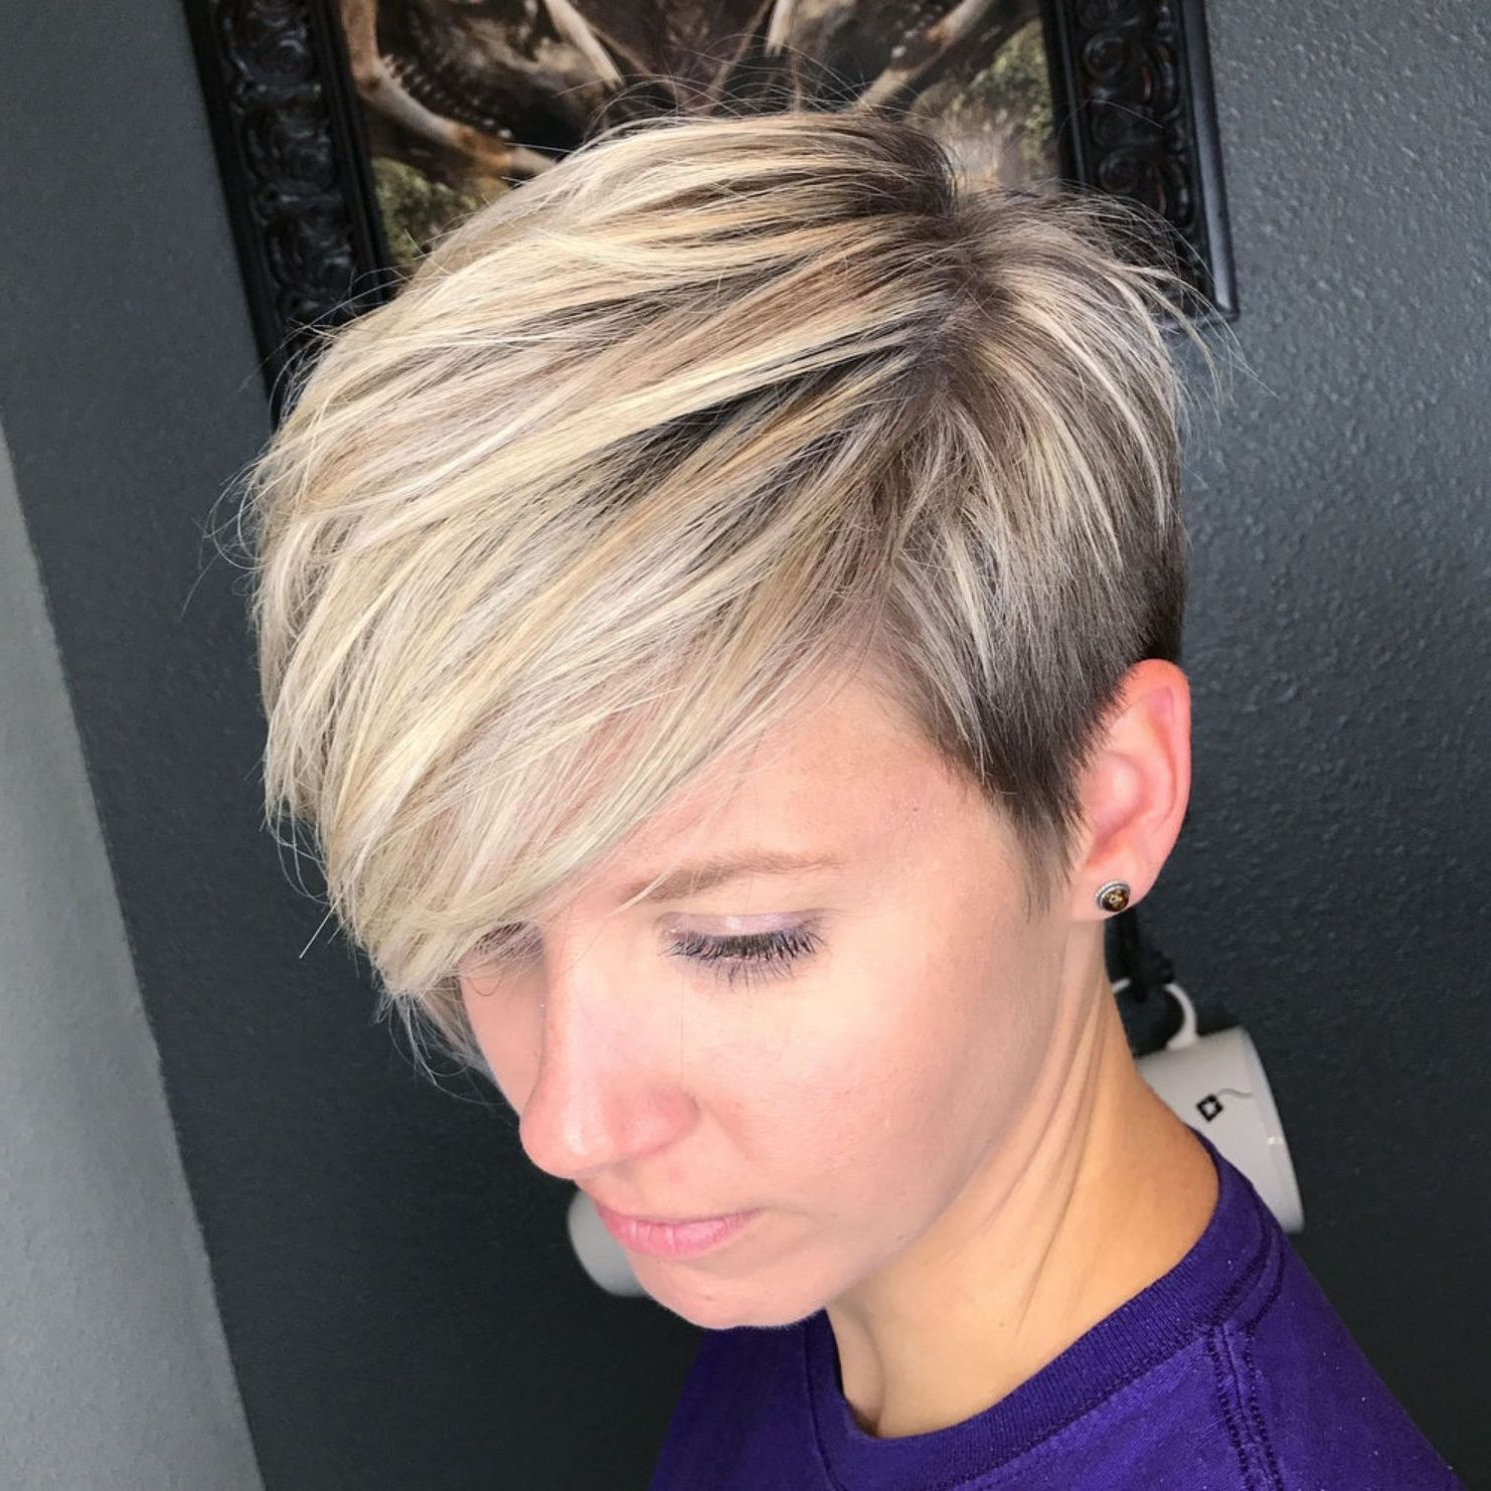 70 Short Shaggy, Spiky, Edgy Pixie Cuts And Hairstyles In 2018 Inside Sunny Blonde Finely Chopped Pixie Haircuts (View 9 of 20)